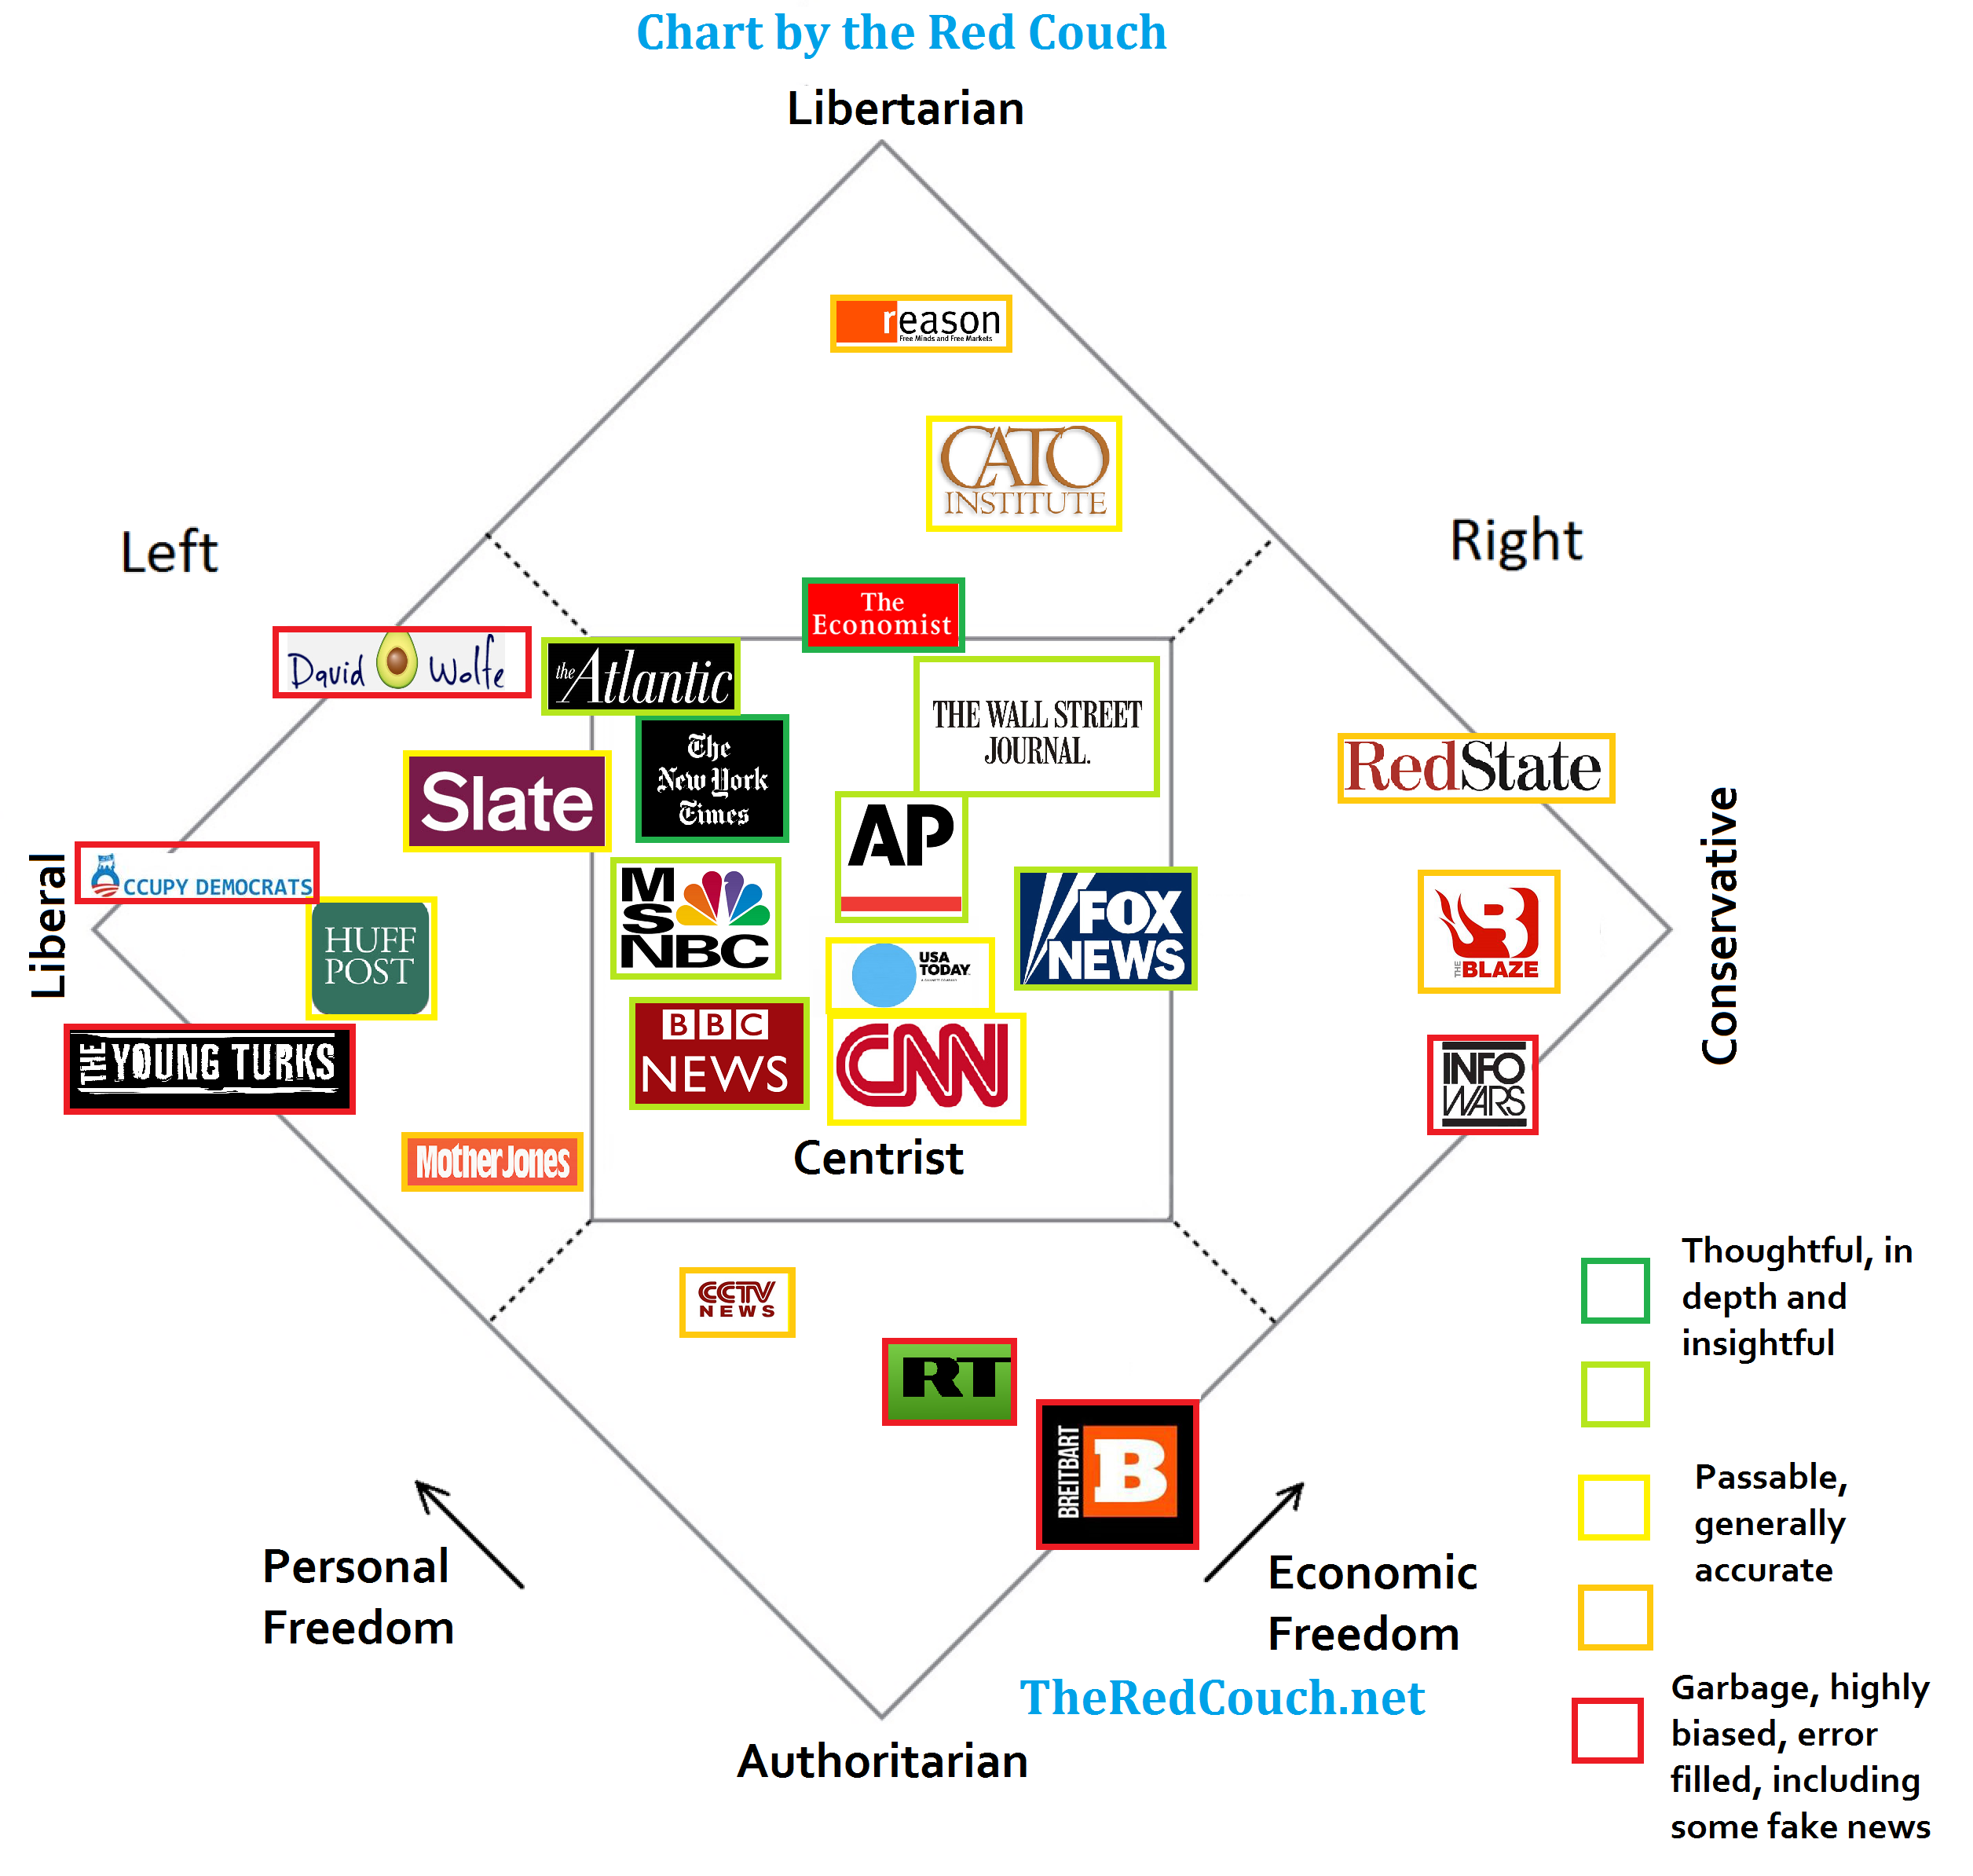 Media Bias Chart With More Than One Political Dimension The Red Couch